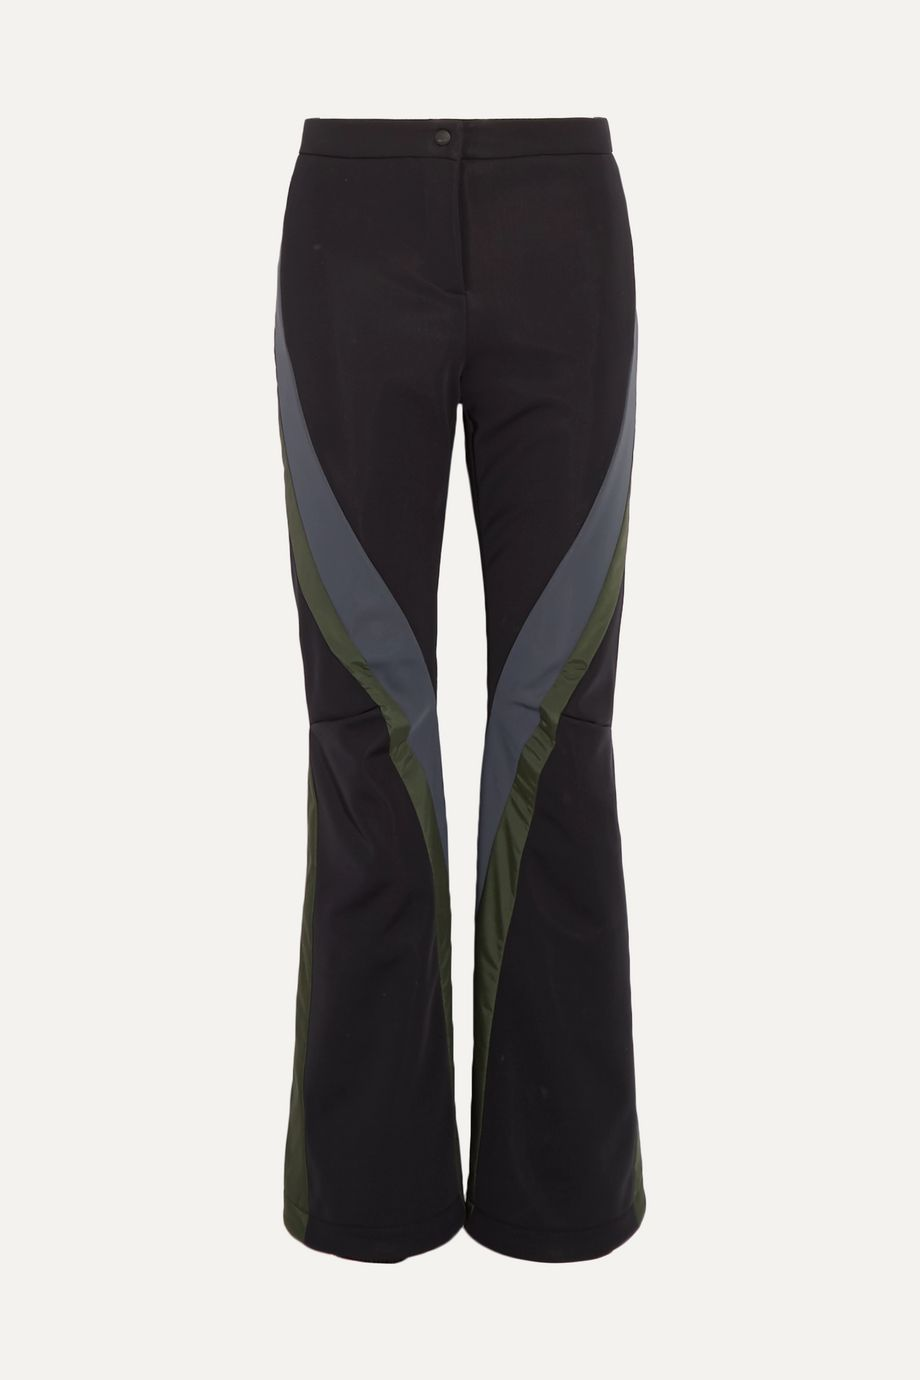 Fendi Wonders paneled ski pants